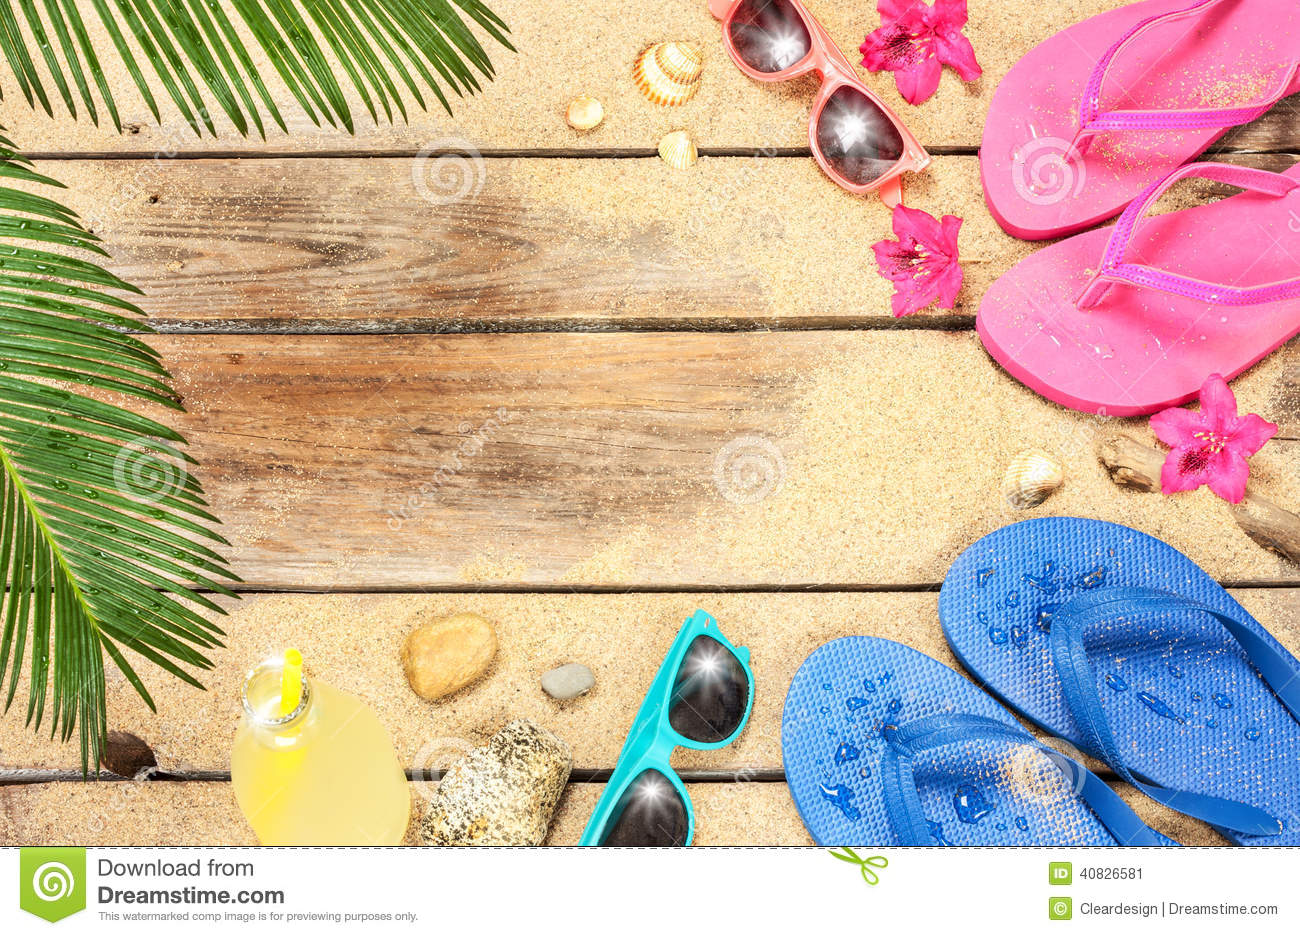 00653d7e4 Summer holiday (vacation) tropical beach background layout with free text  space. Palm tree leaves